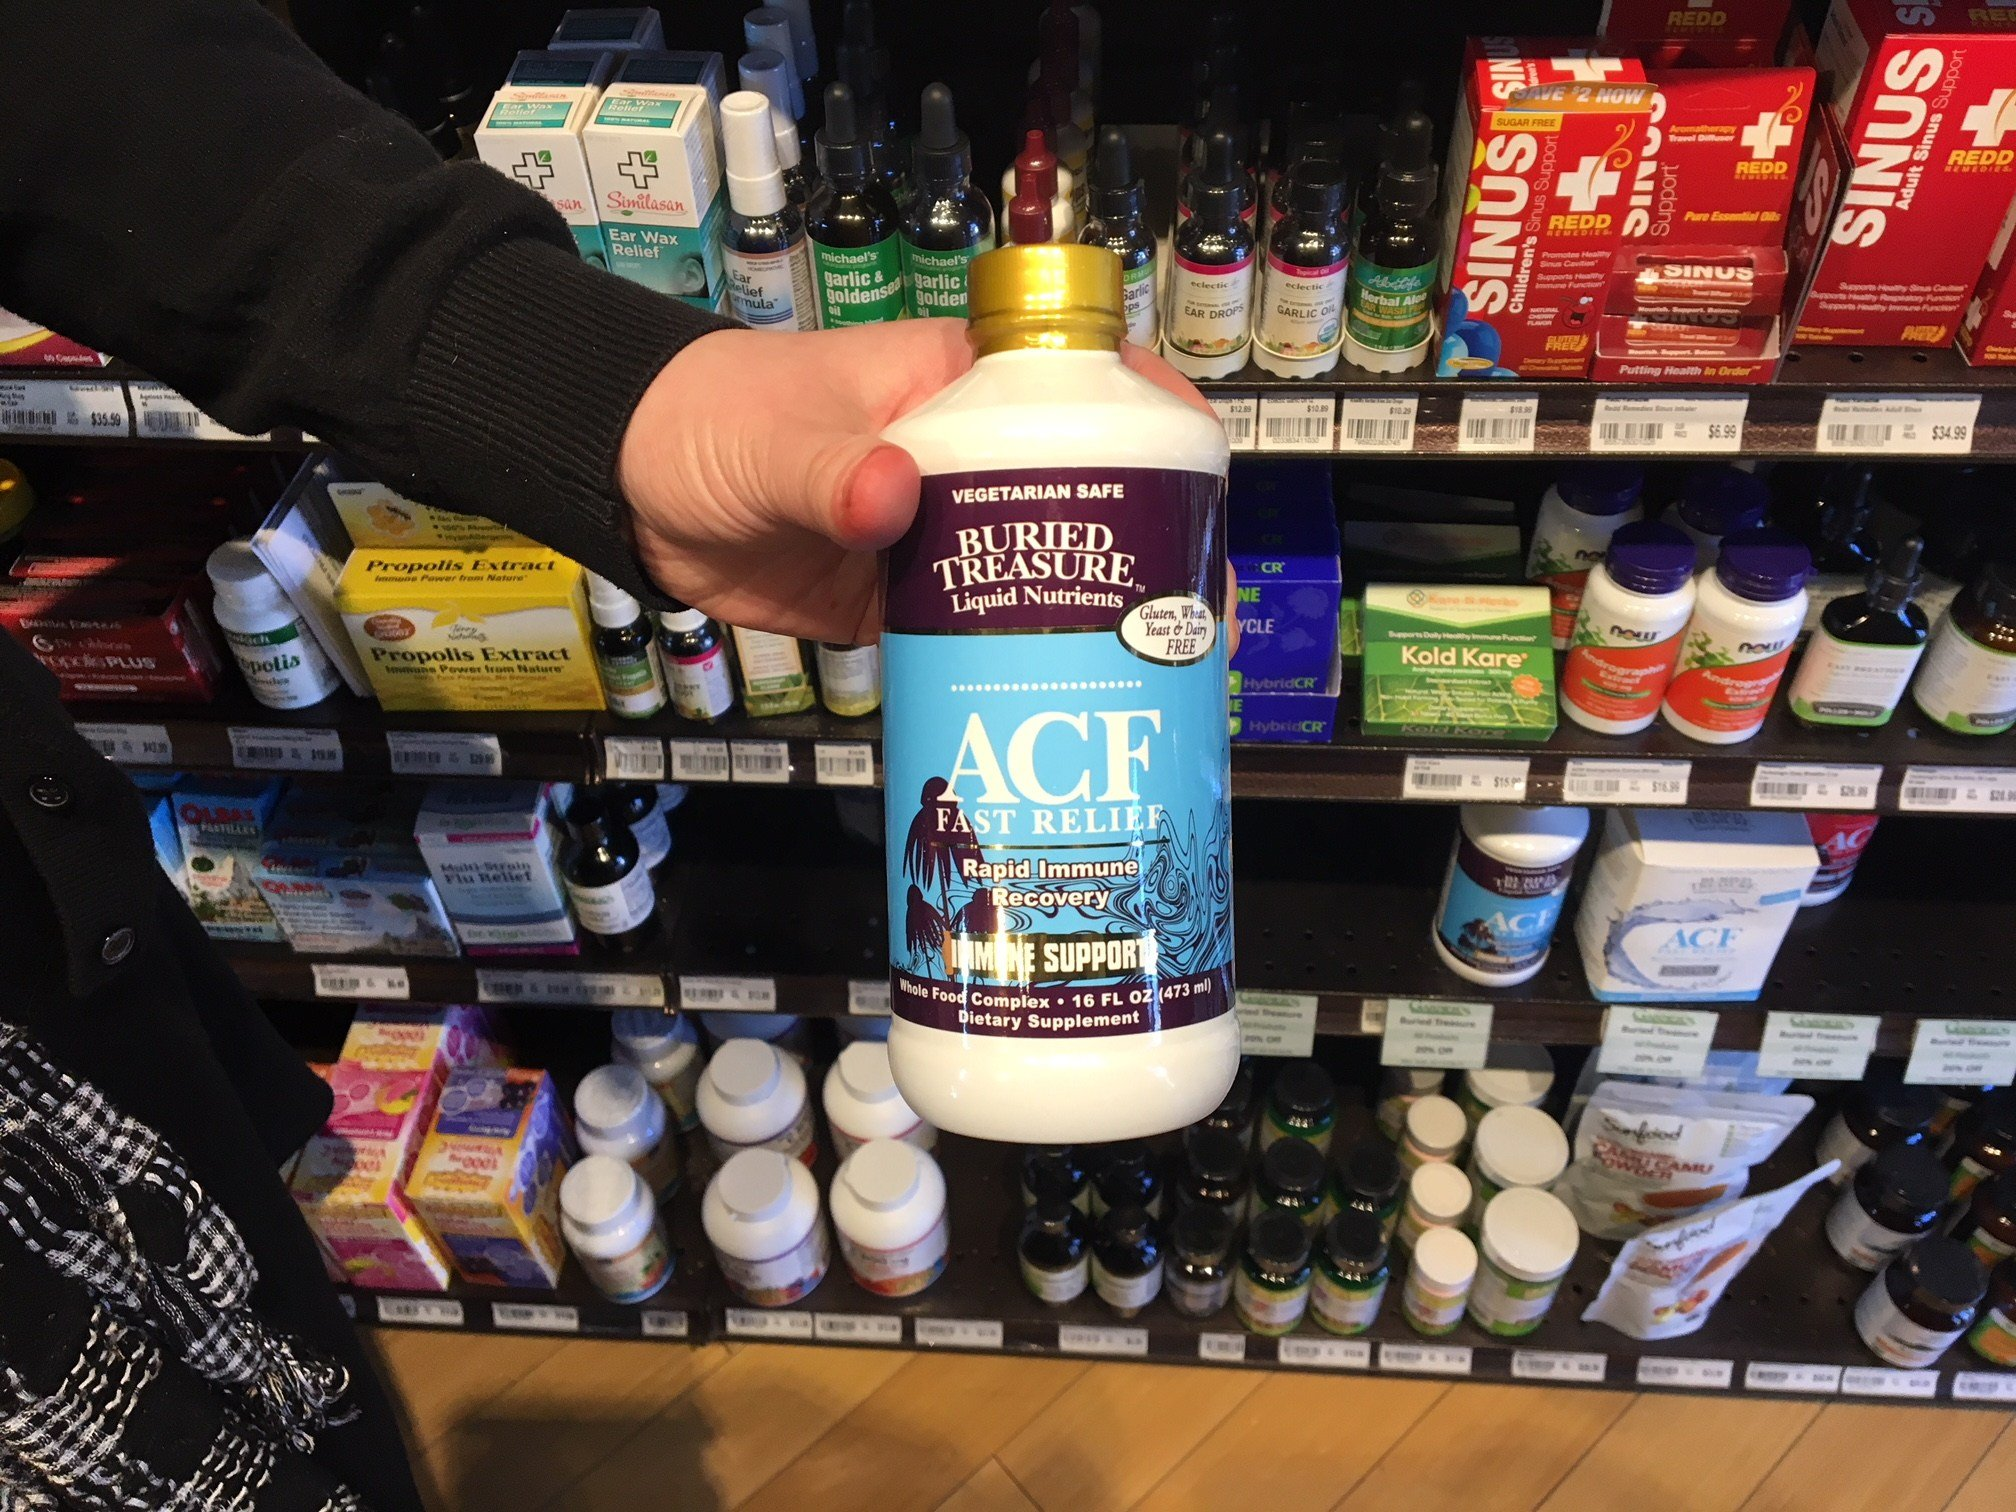 Garner's Natural Life said ACF is a popular product during cold and flu season (FOX Carolina: 1/5/18).